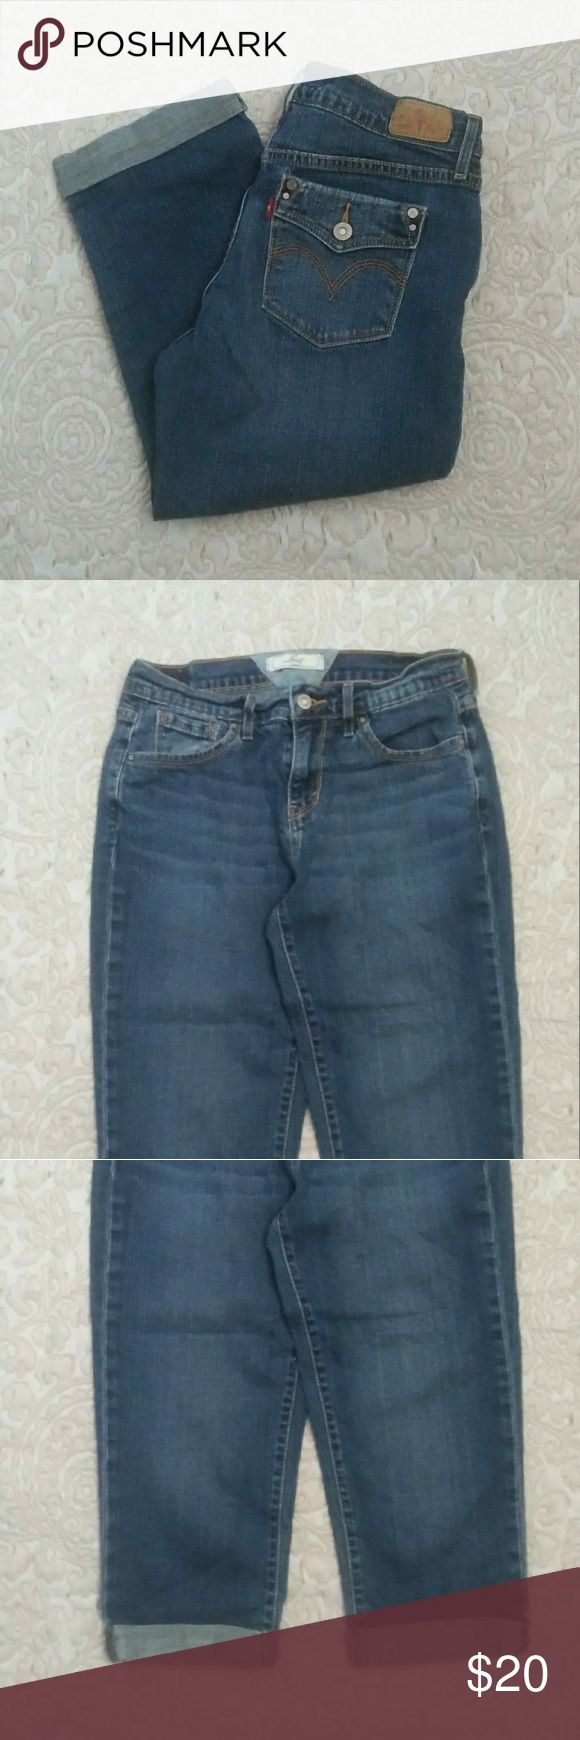 Levi's Classic Cuffed Women's Capris Jeans size 4 Beautiful Levi's Classic Cuffed Women's Capris Stonewashed Jeans size 4, gently pre-owned.  Buttons and zipper are in perfect working condition. Levi's Jeans Ankle & Cropped